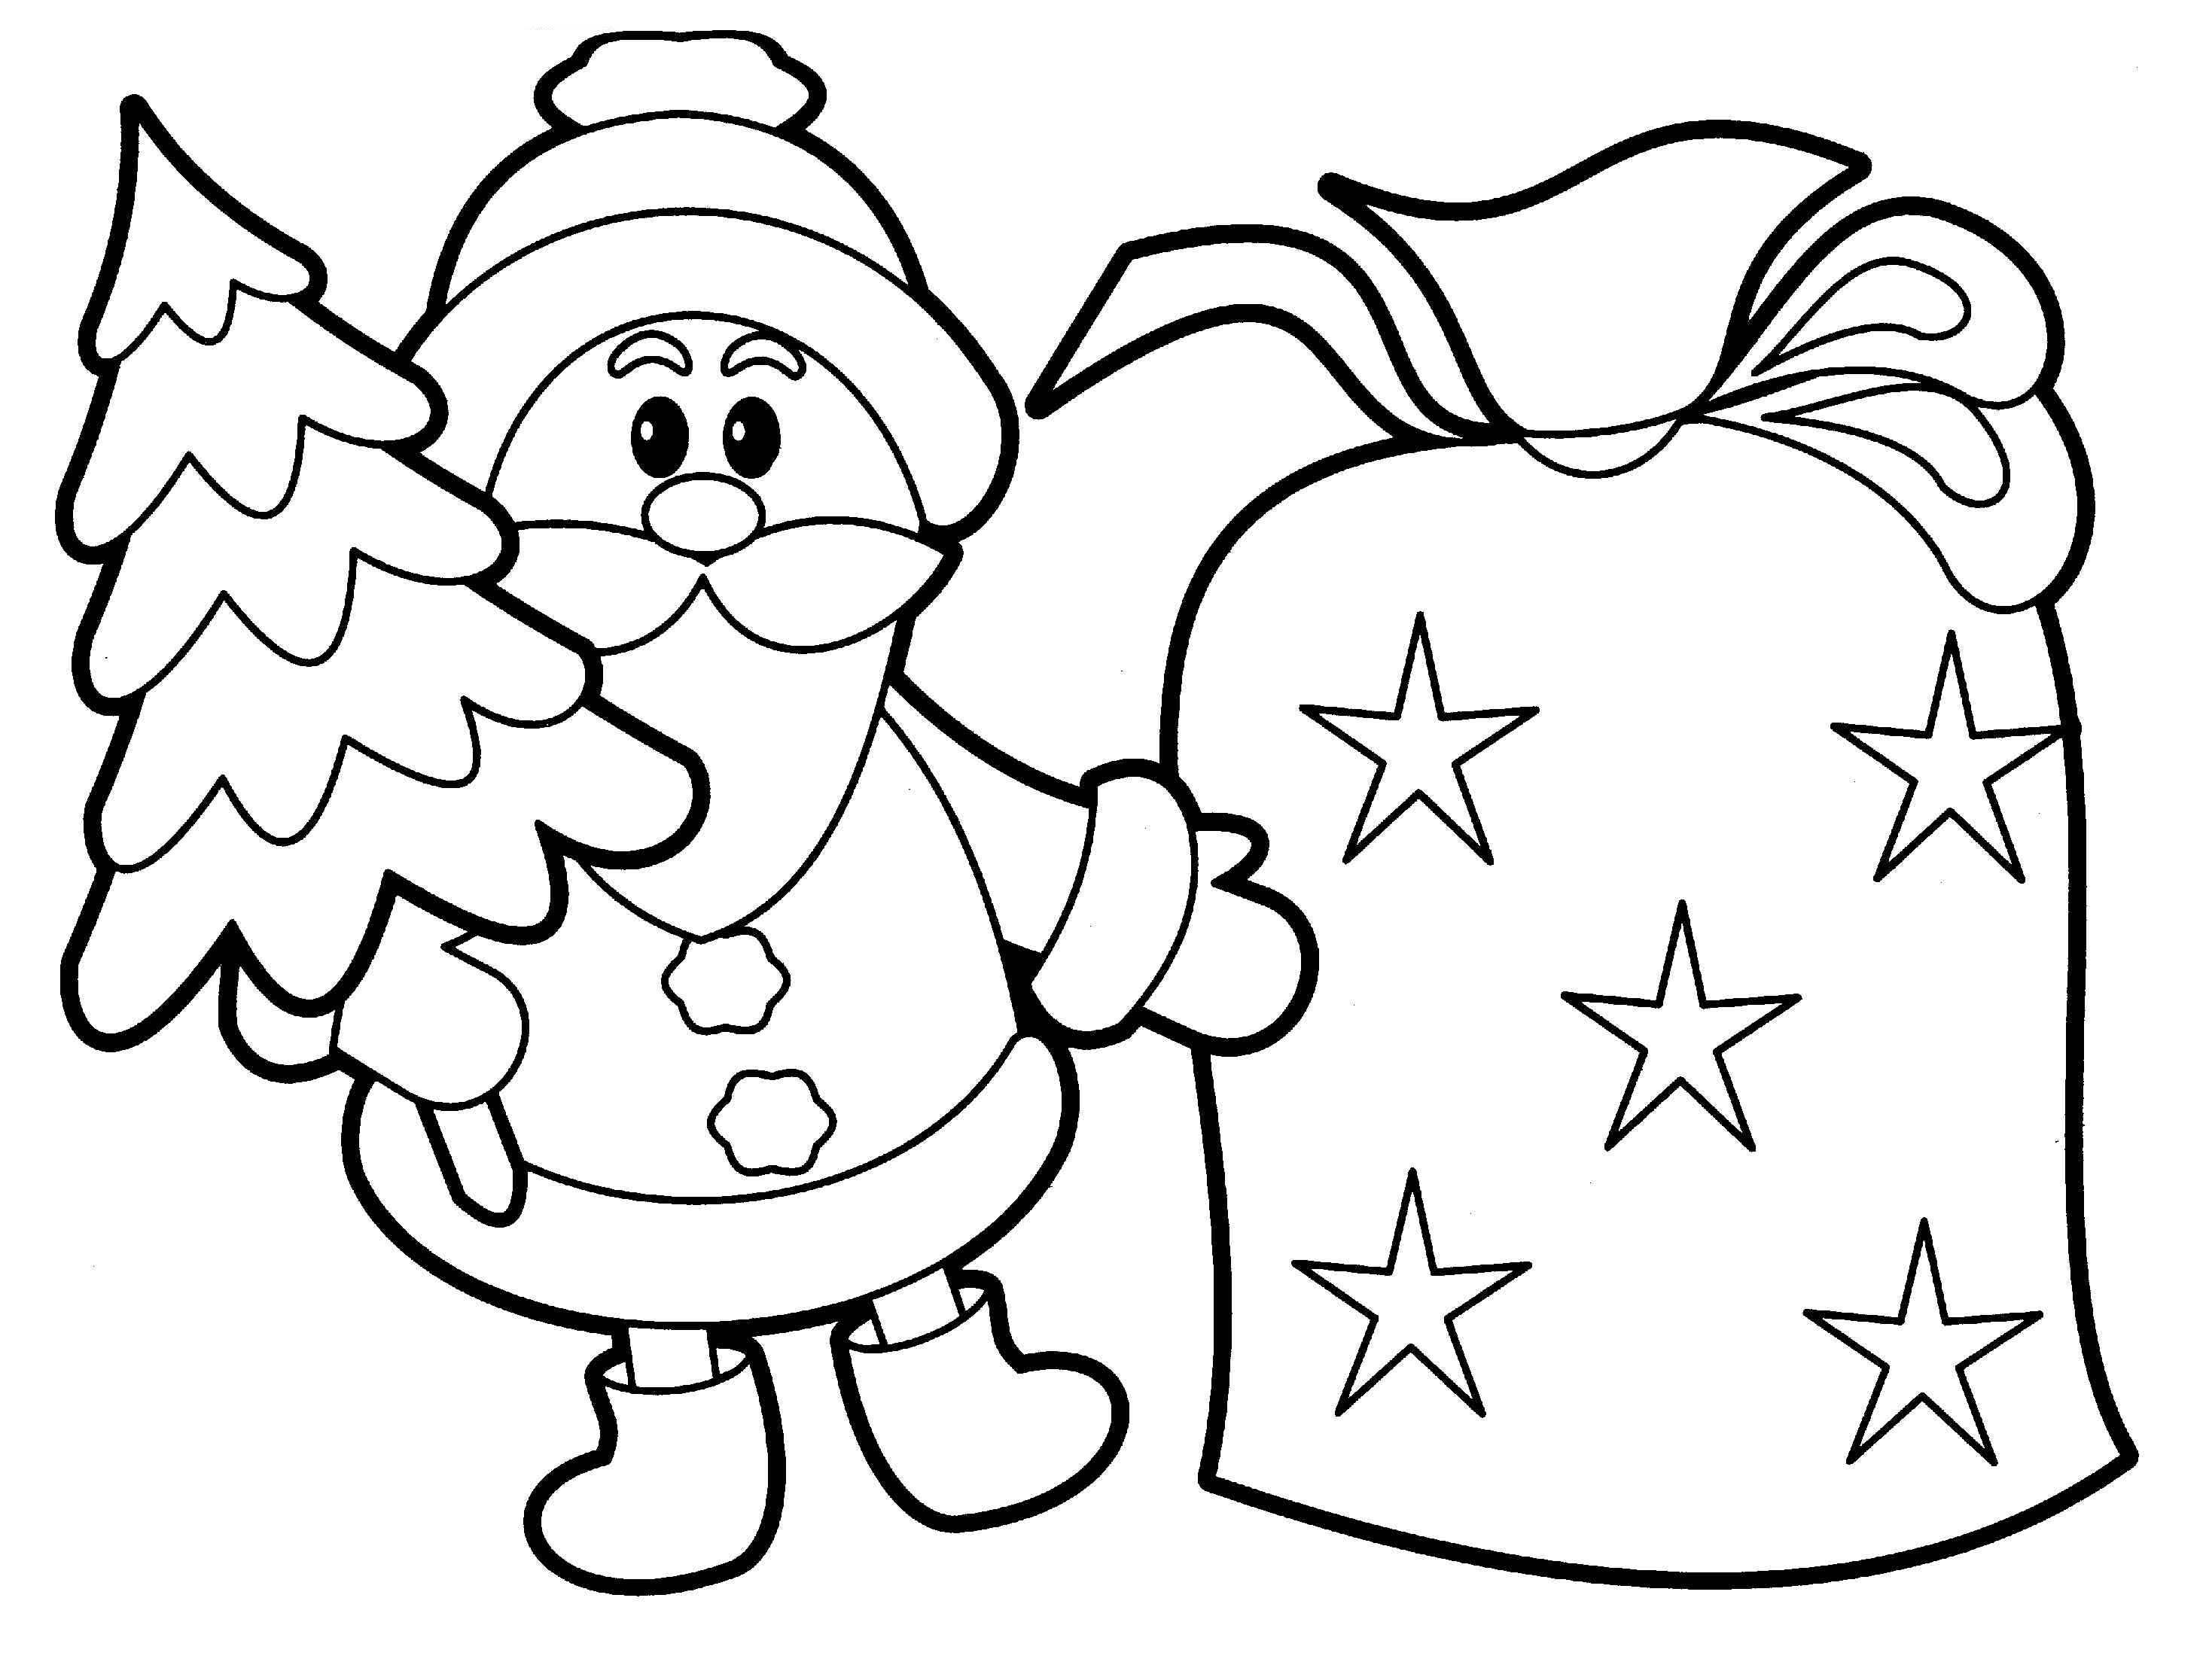 christmas color pages free 5 free christmas printable coloring pages snowman tree pages color free christmas